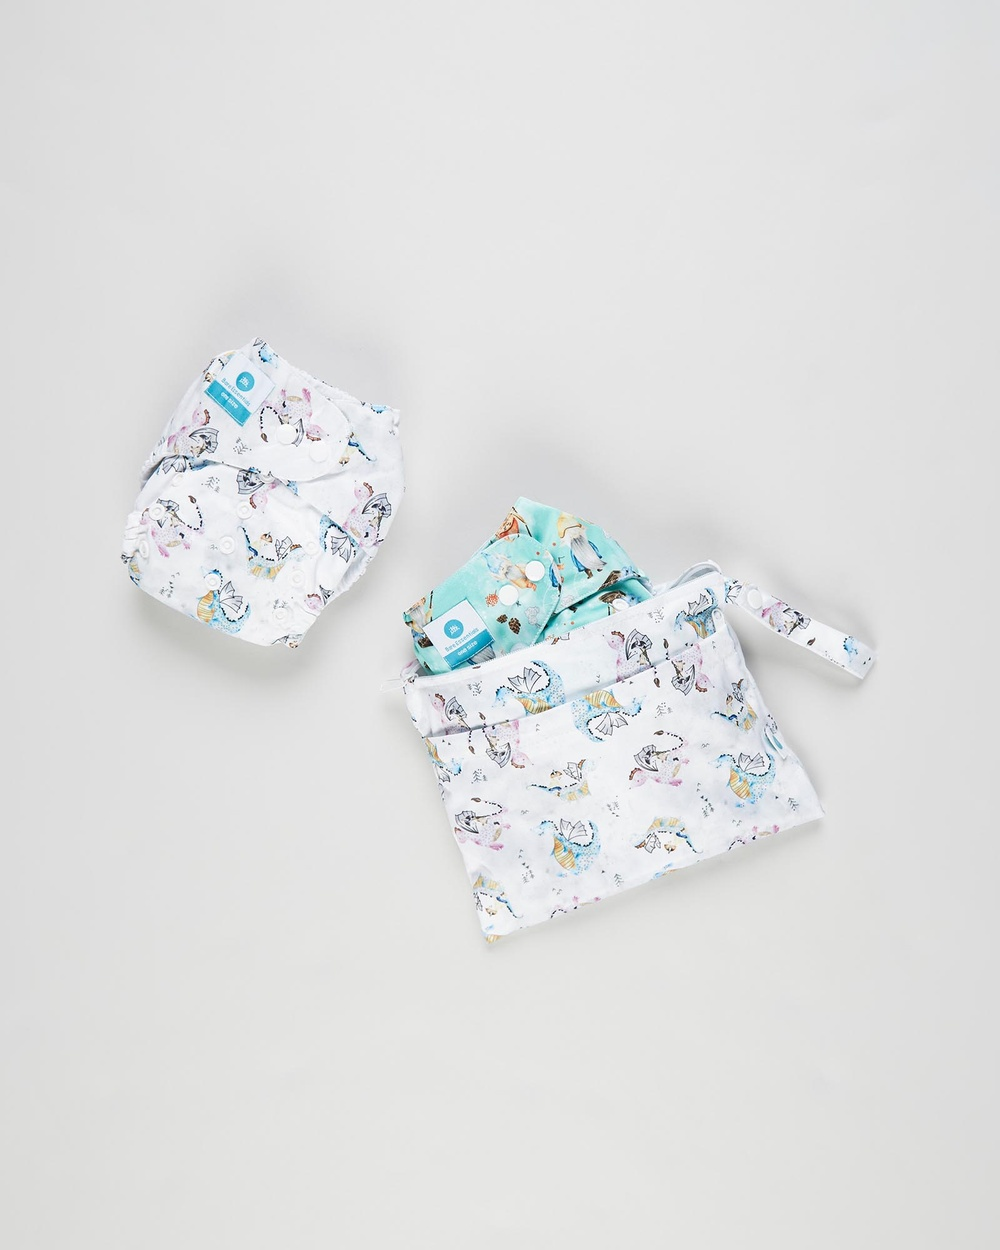 itti bitti Bare Essentials One Size Fits Most Reusable Cloth Nappy & Wetbag 2 Pack Changing Lucky Pendragon 2-Pack